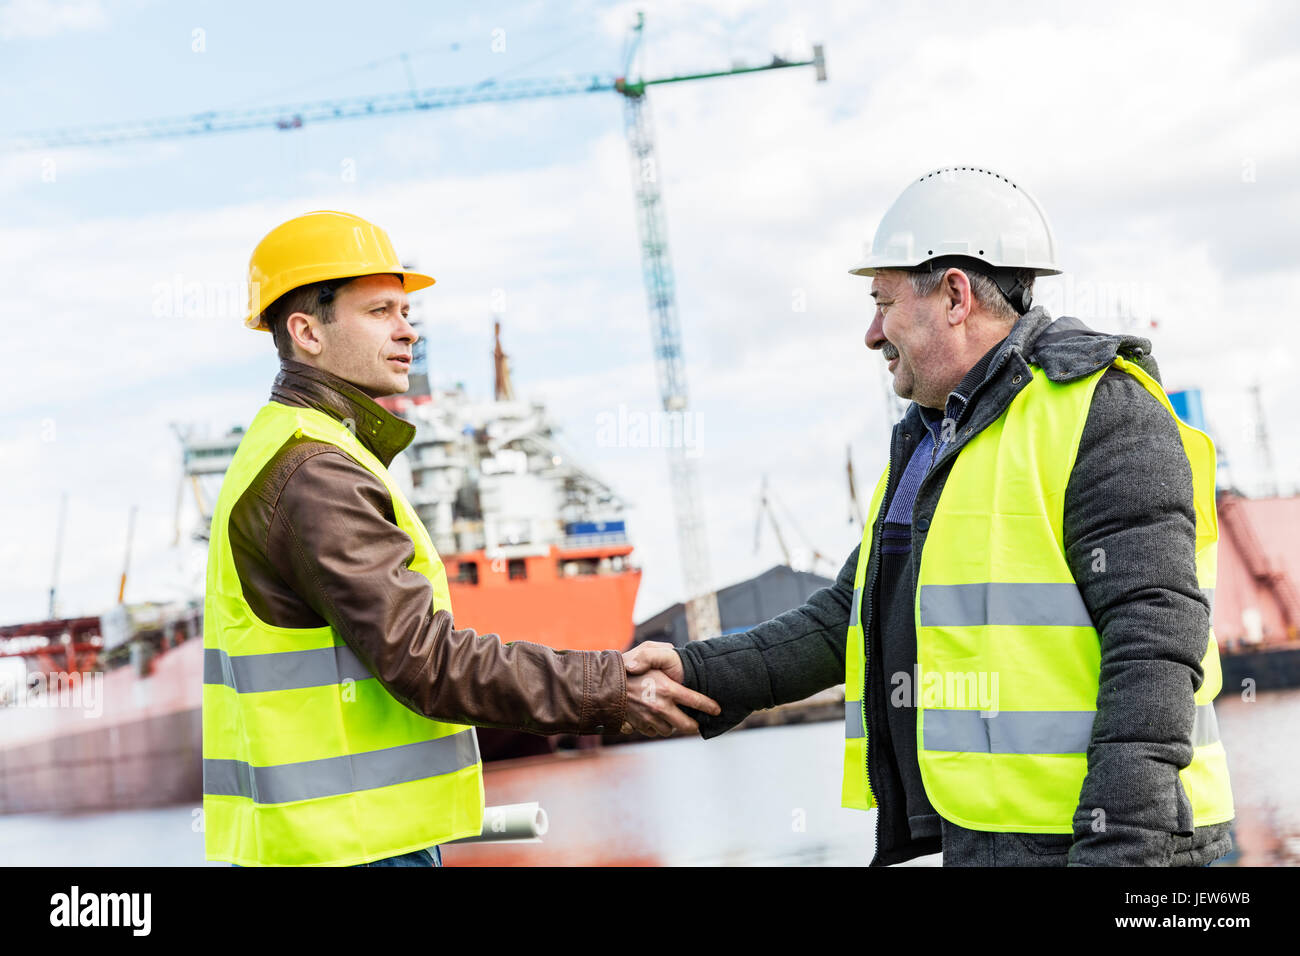 Shipbuilding deal concluded by a handshake of two engineers. Company contract - Stock Image